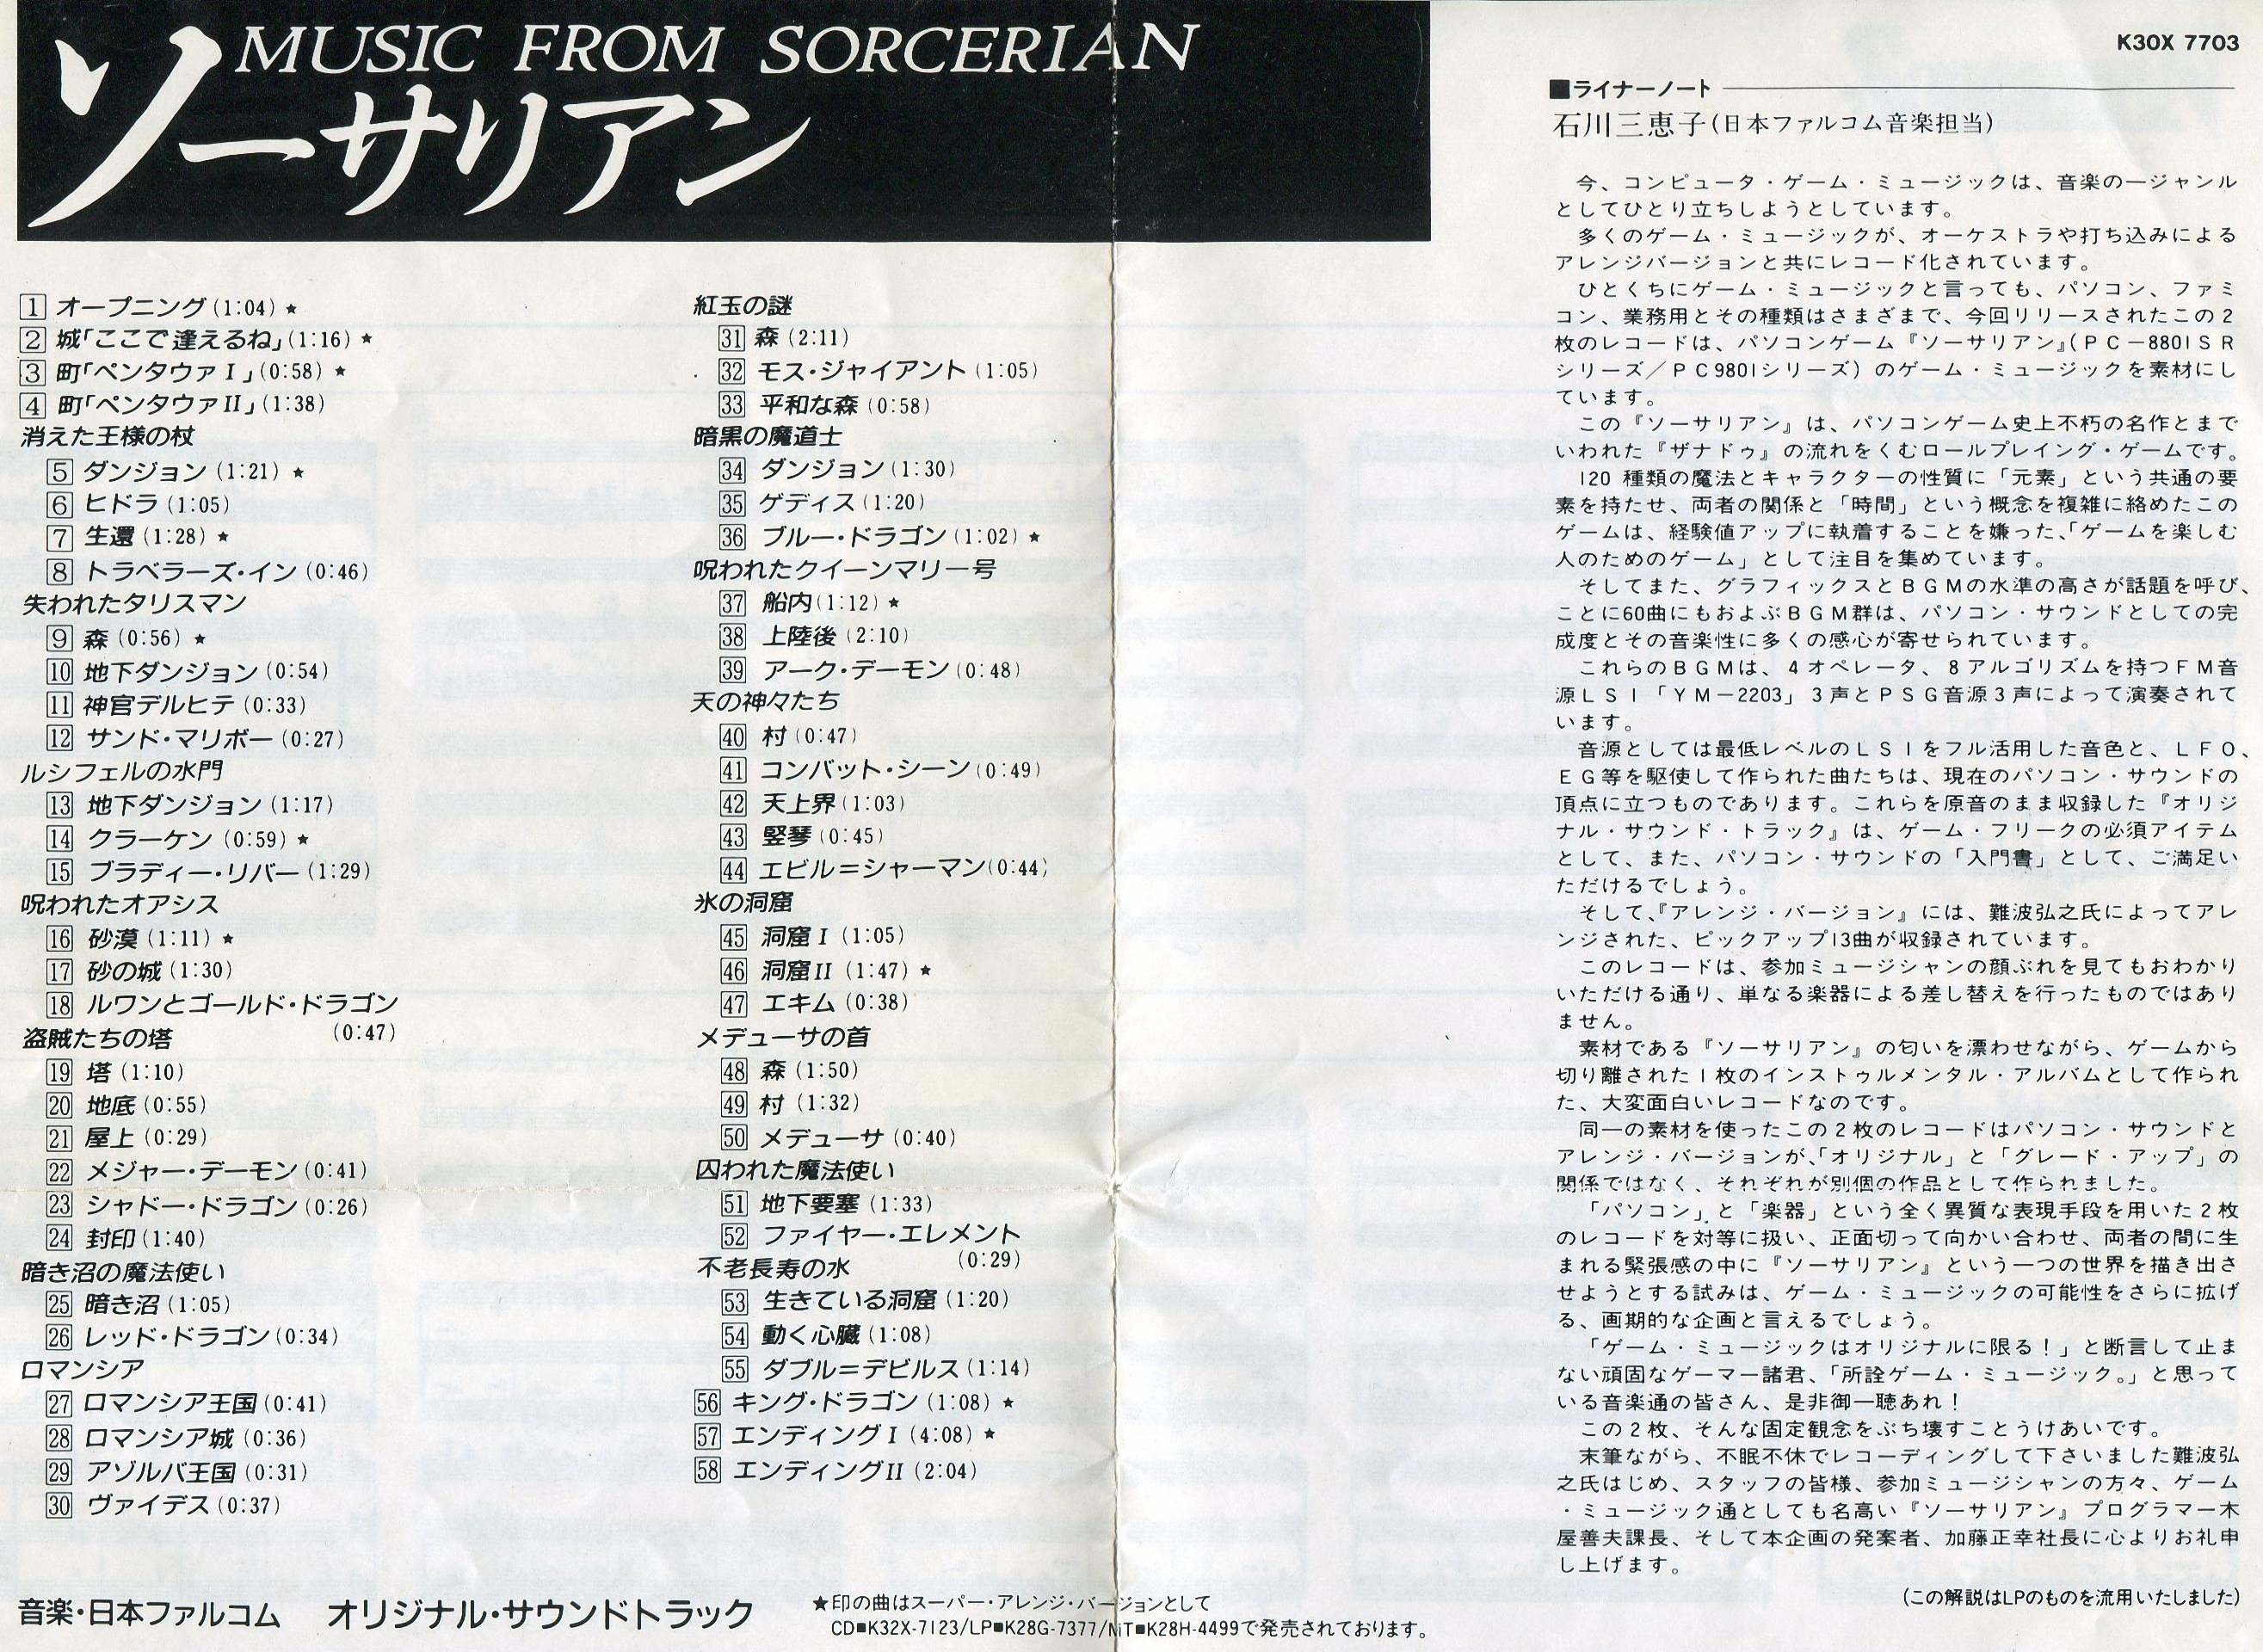 Sorcerian Music From Mp3